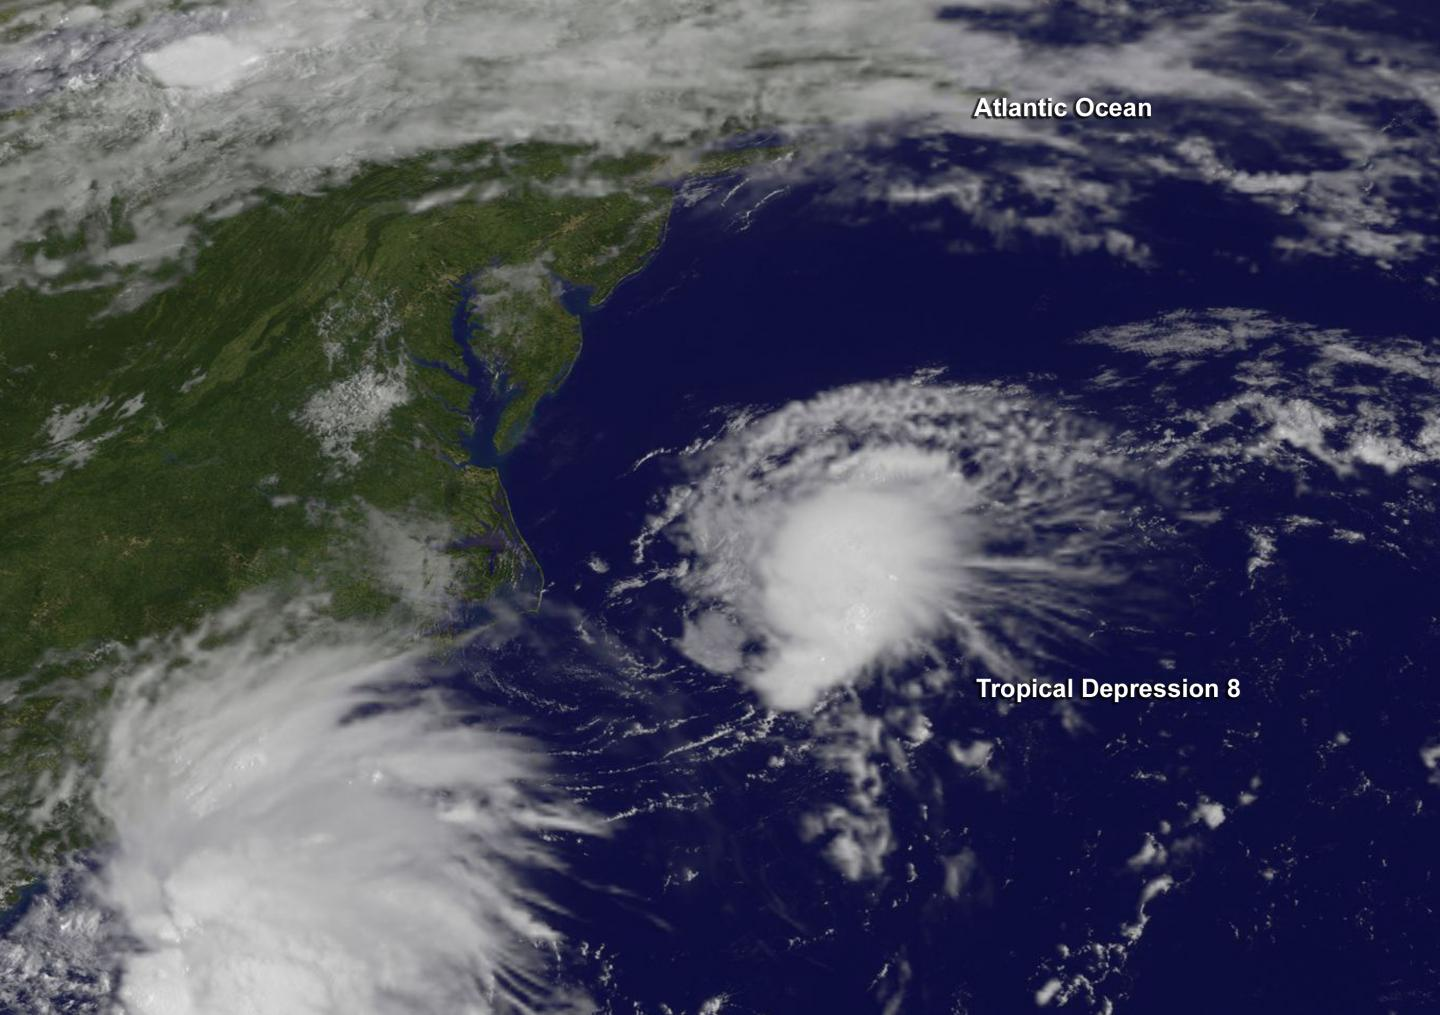 Home › Local › Tropical storm watch issued for southern Georgia coast